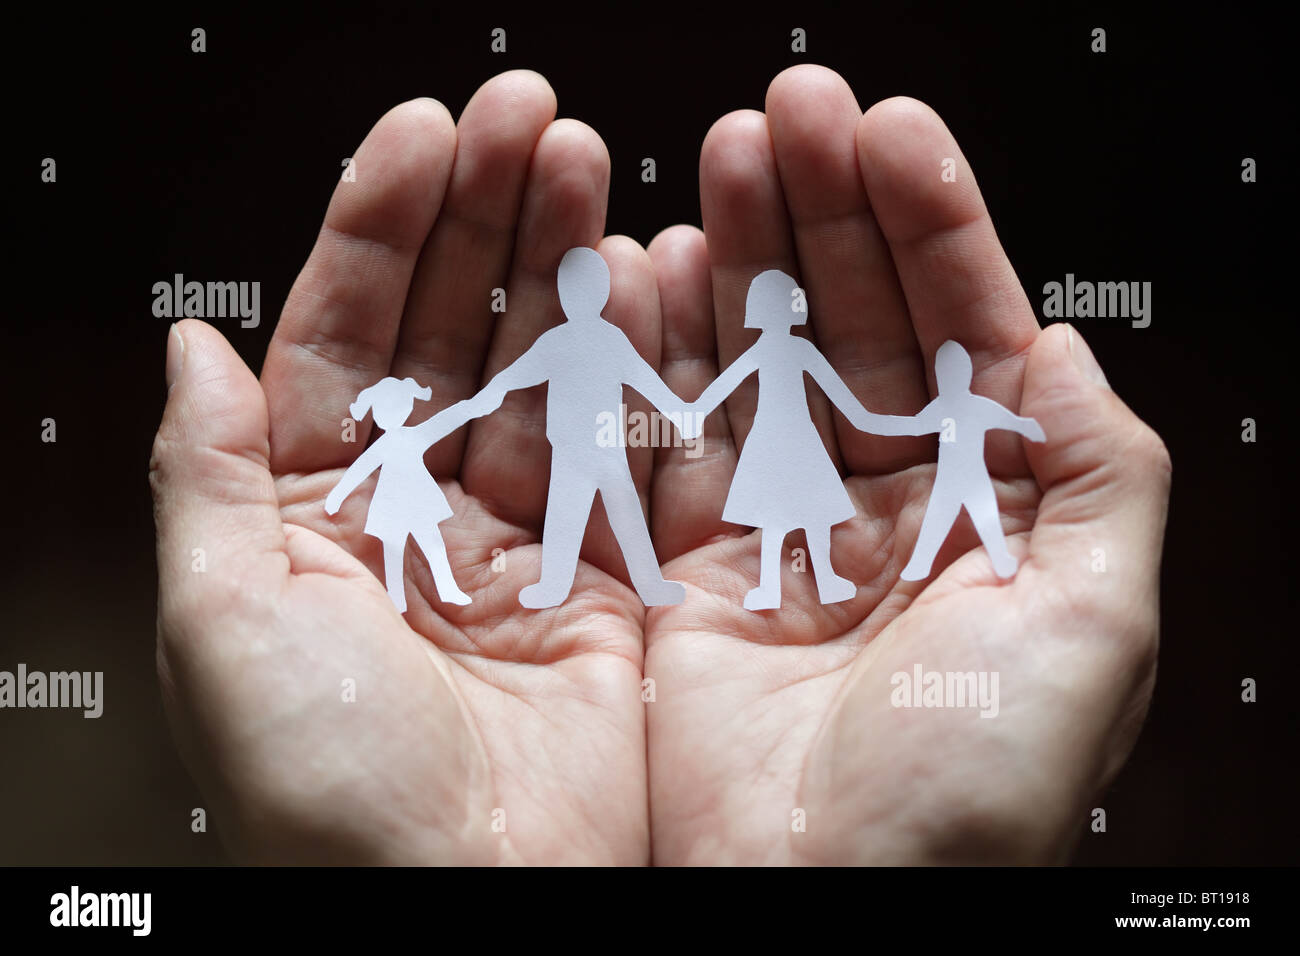 Paper chain family protected in cupped hands - Stock Image